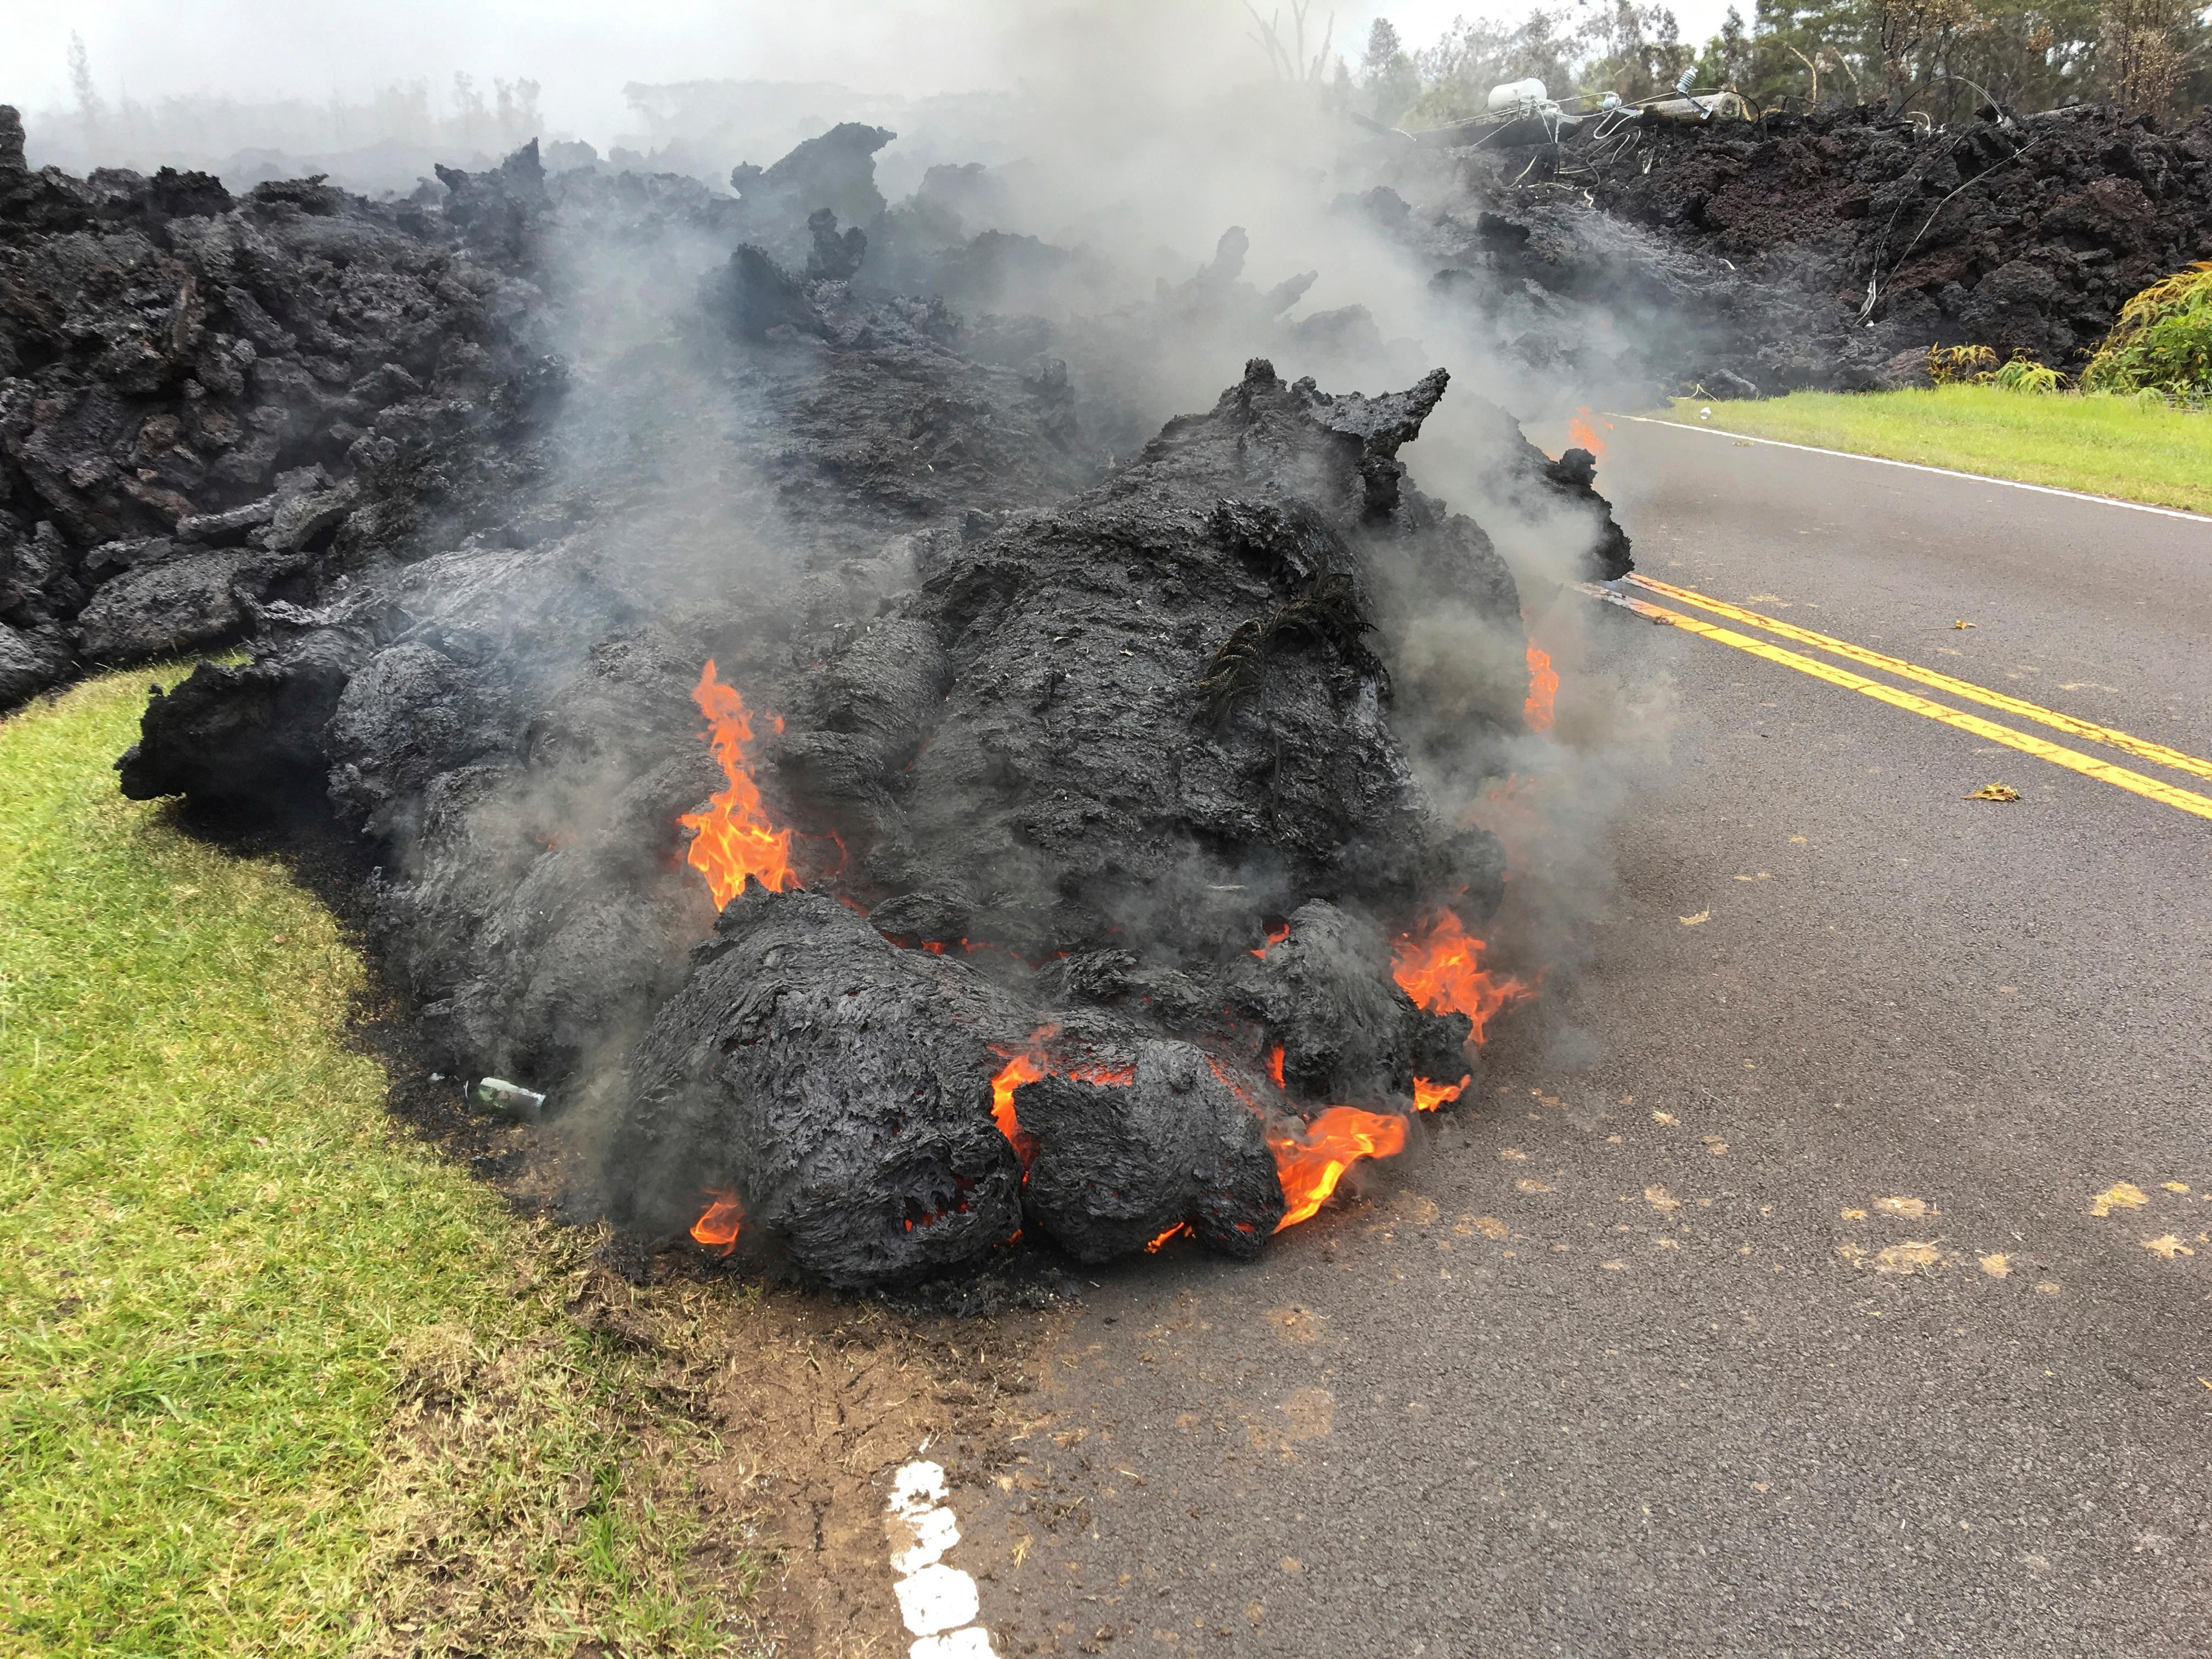 Lava from the Kilauea volcano moves across the road in the Leilani Estates in Pahoa, Hawaii, Saturday, May 5, 2018. Hundreds of anxious residents on the Big Island of Hawaii hunkered down Saturday for what could be weeks or months of upheaval as the dangers from an erupting Kilauea volcano continued to grow. (AP Photo/Marco Garcia)